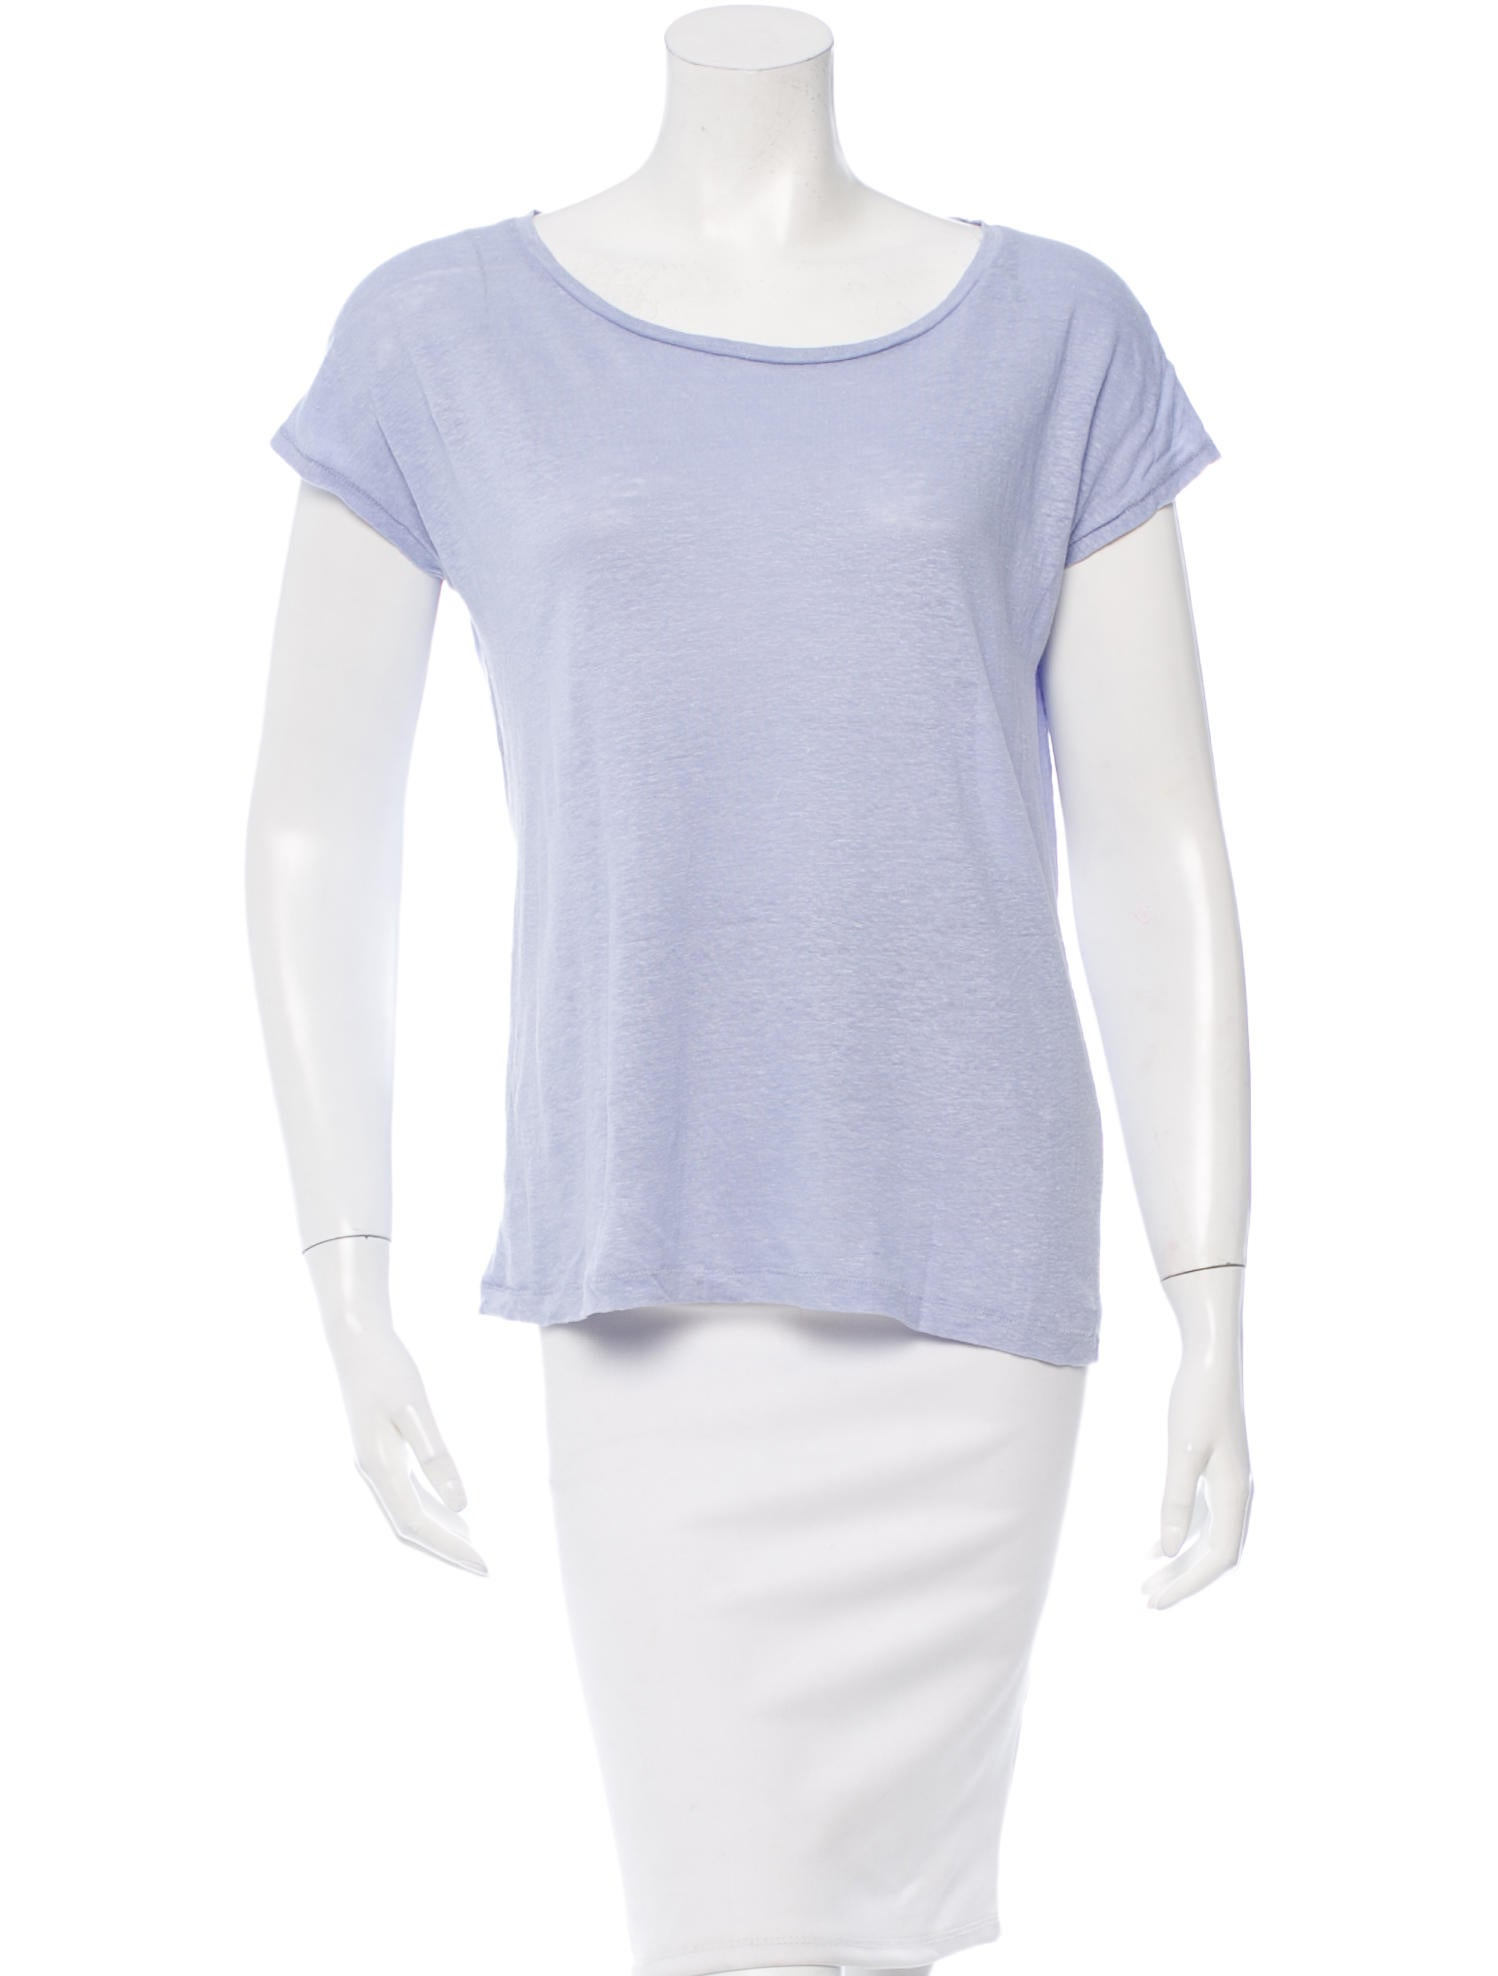 Acne Scoop Neck T Shirt Clothing Acn25956 The Realreal